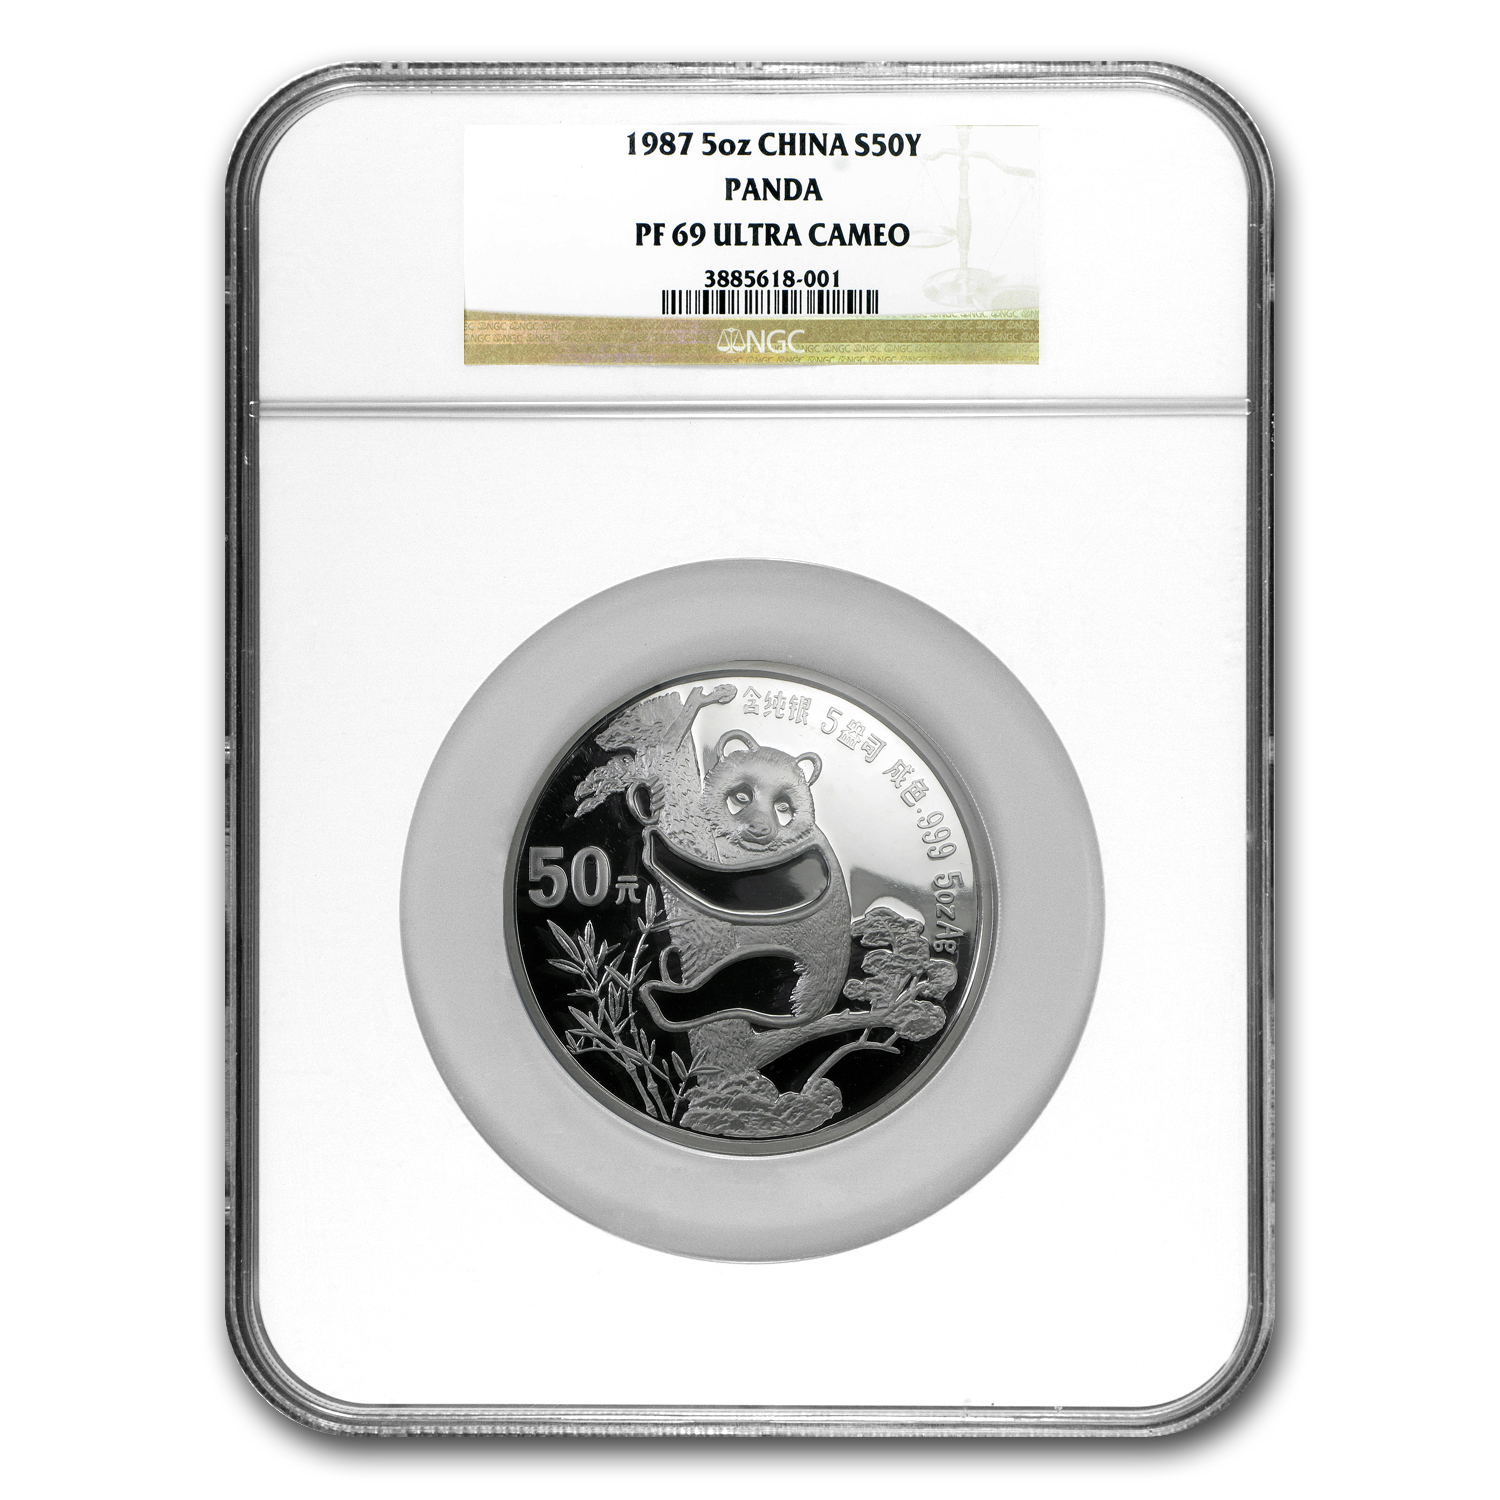 1987 China 5 oz Silver Panda PF-69 NGC